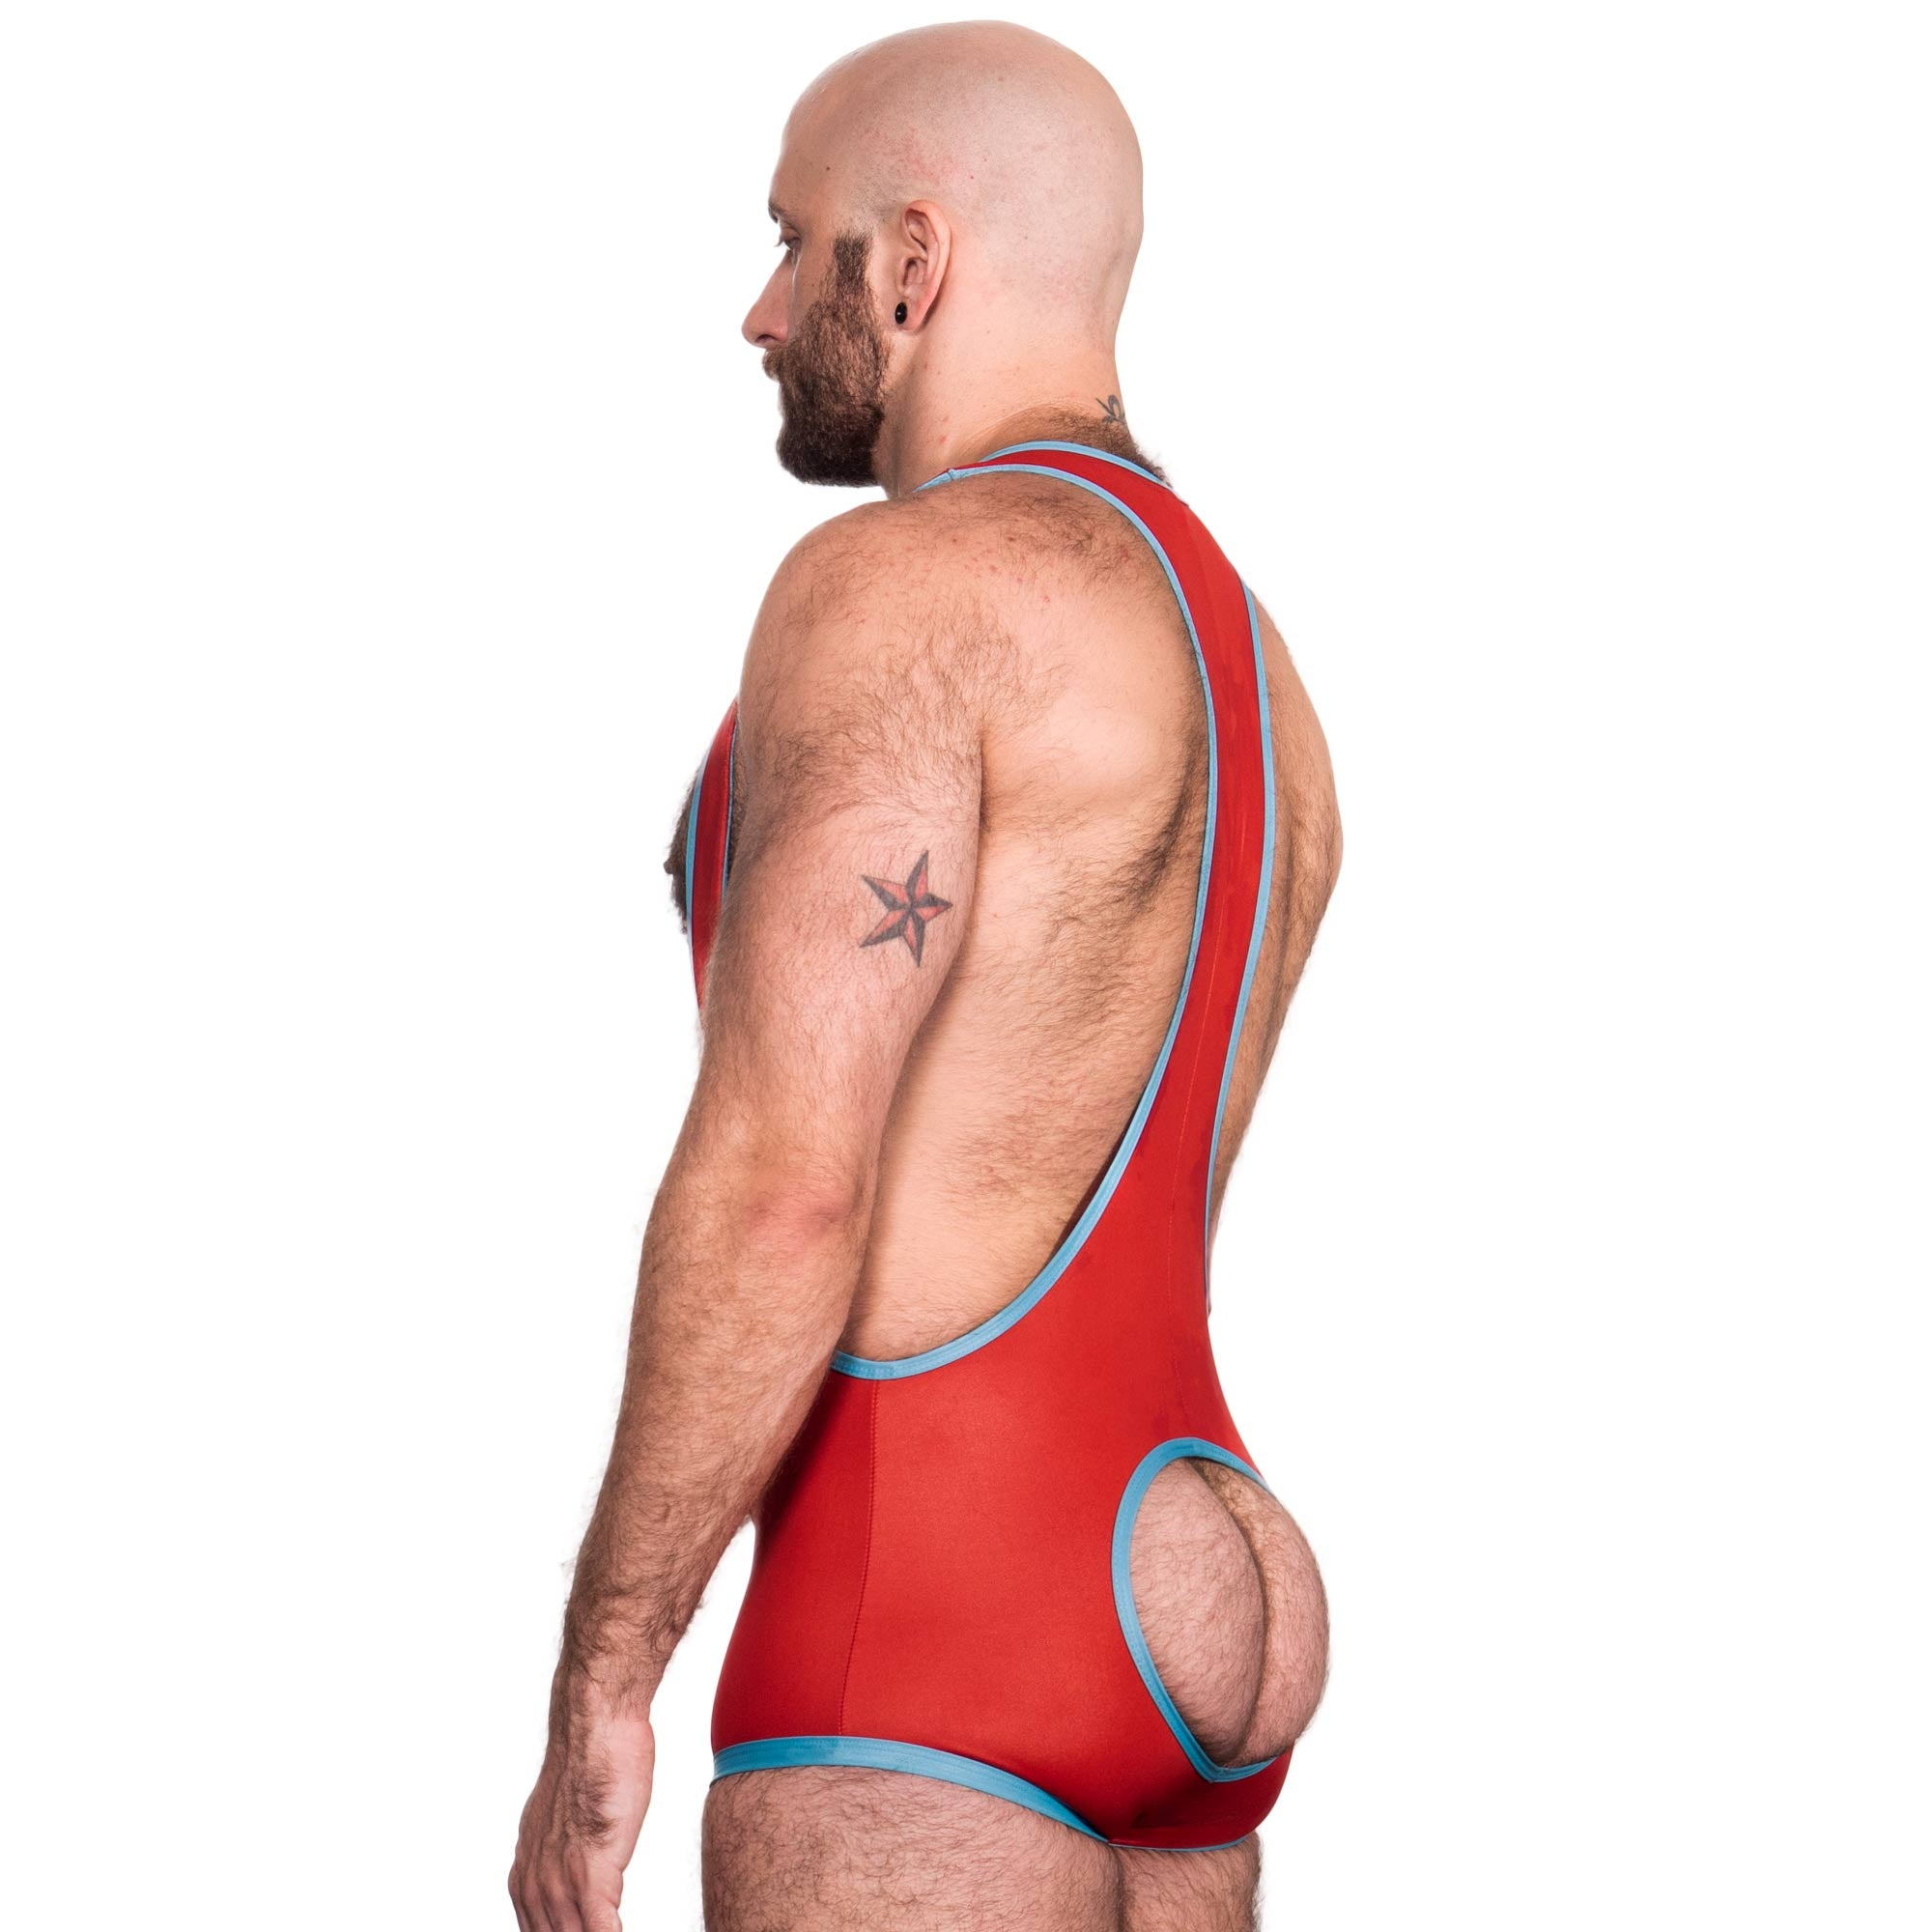 Impulse Singlet - Red/Blue - Assless